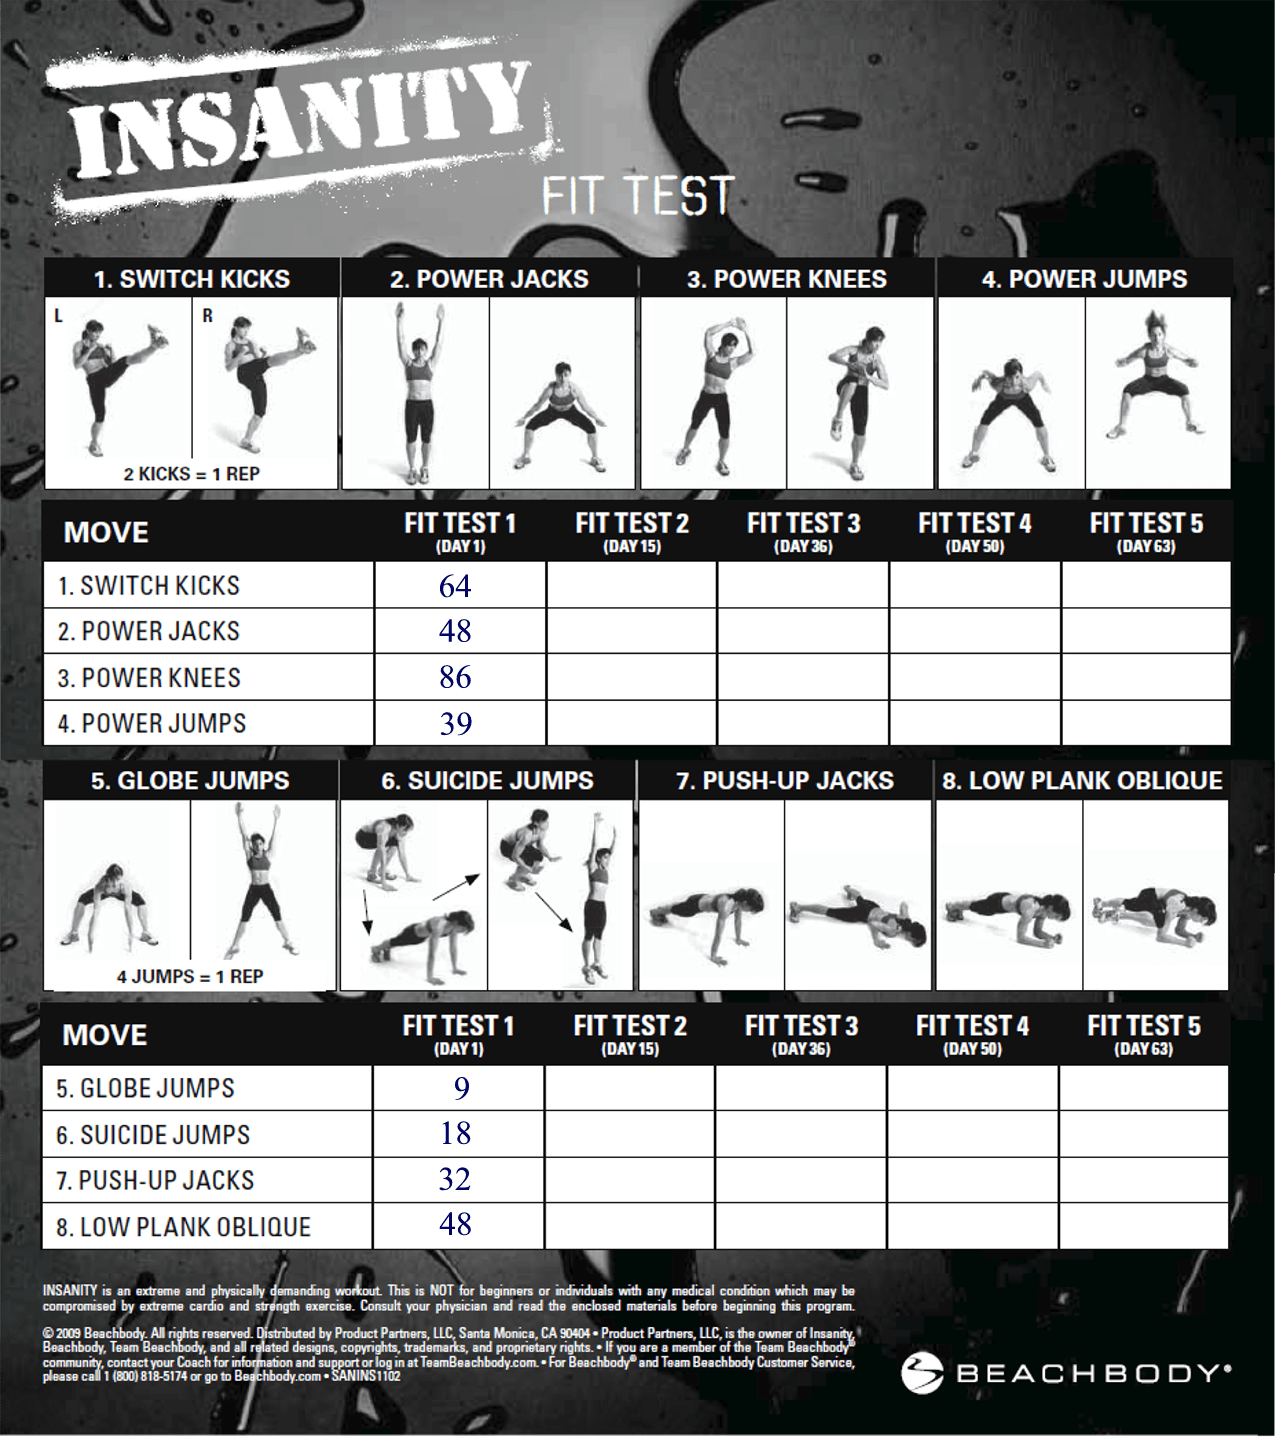 P90x Insanity Hybrid Day 0 Fit Test Amp Schedule